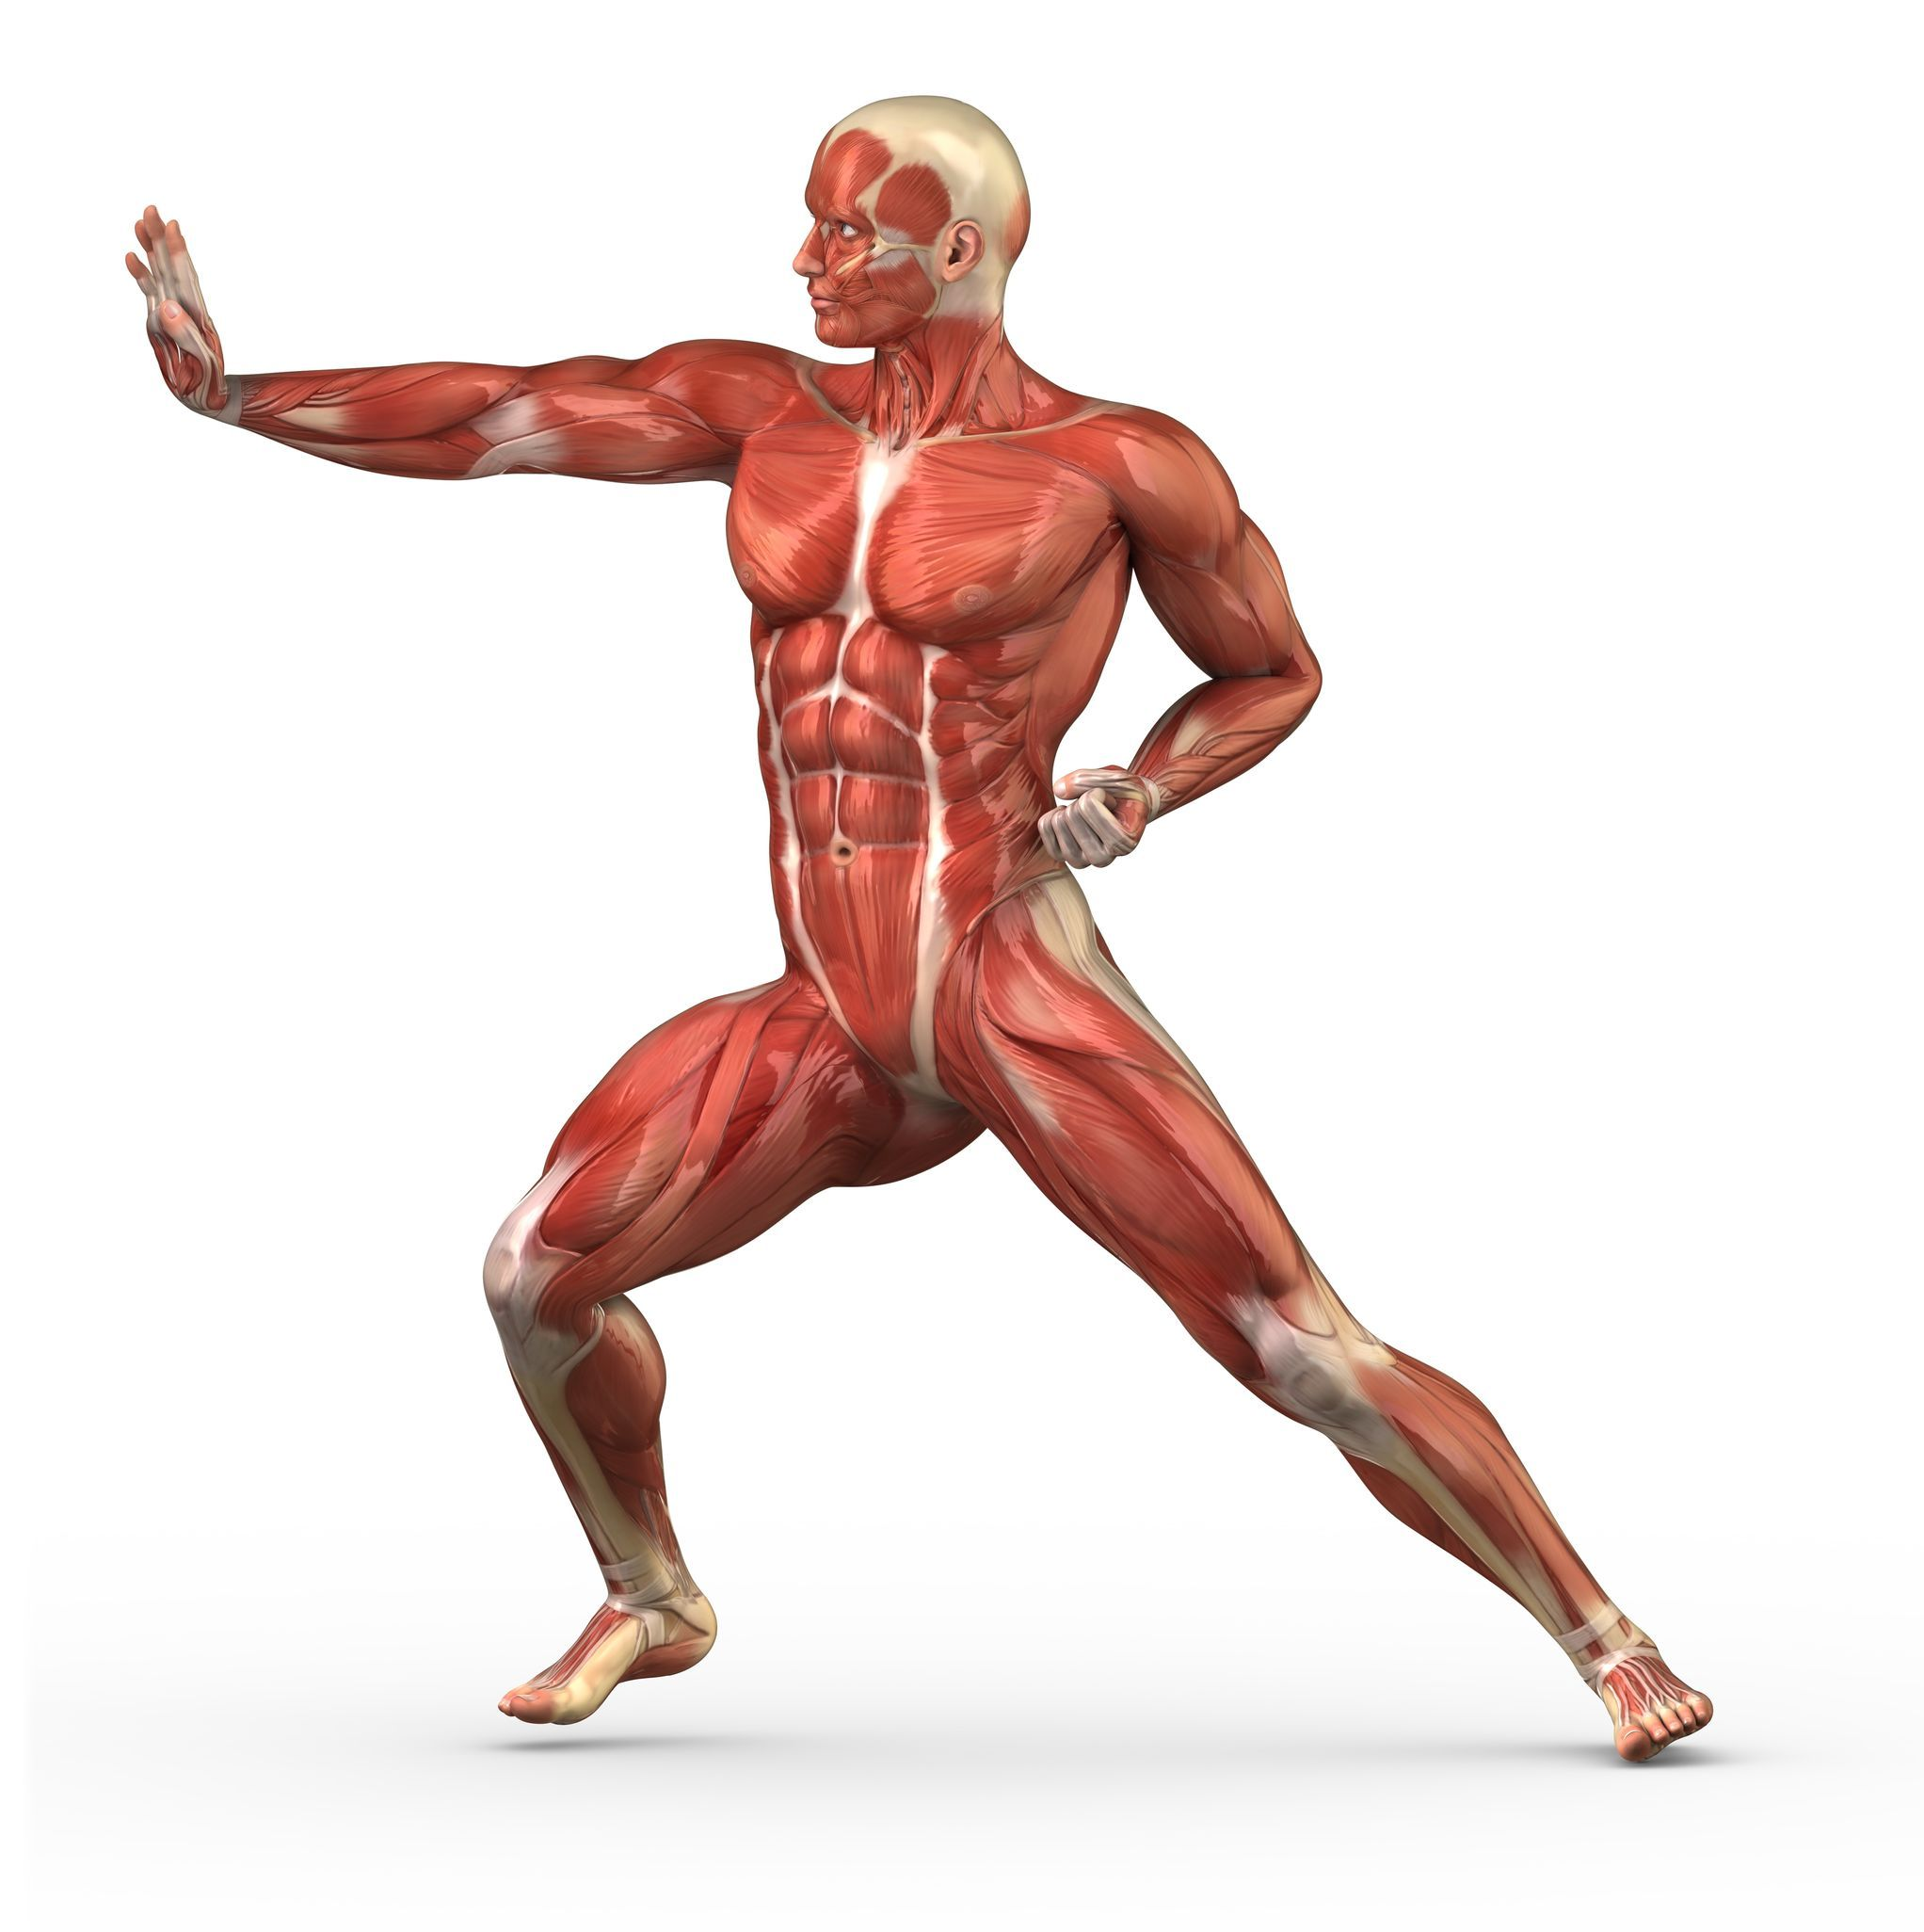 muscle anatomy | muscles anatomy body | muscle anatomy | pinterest, Muscles